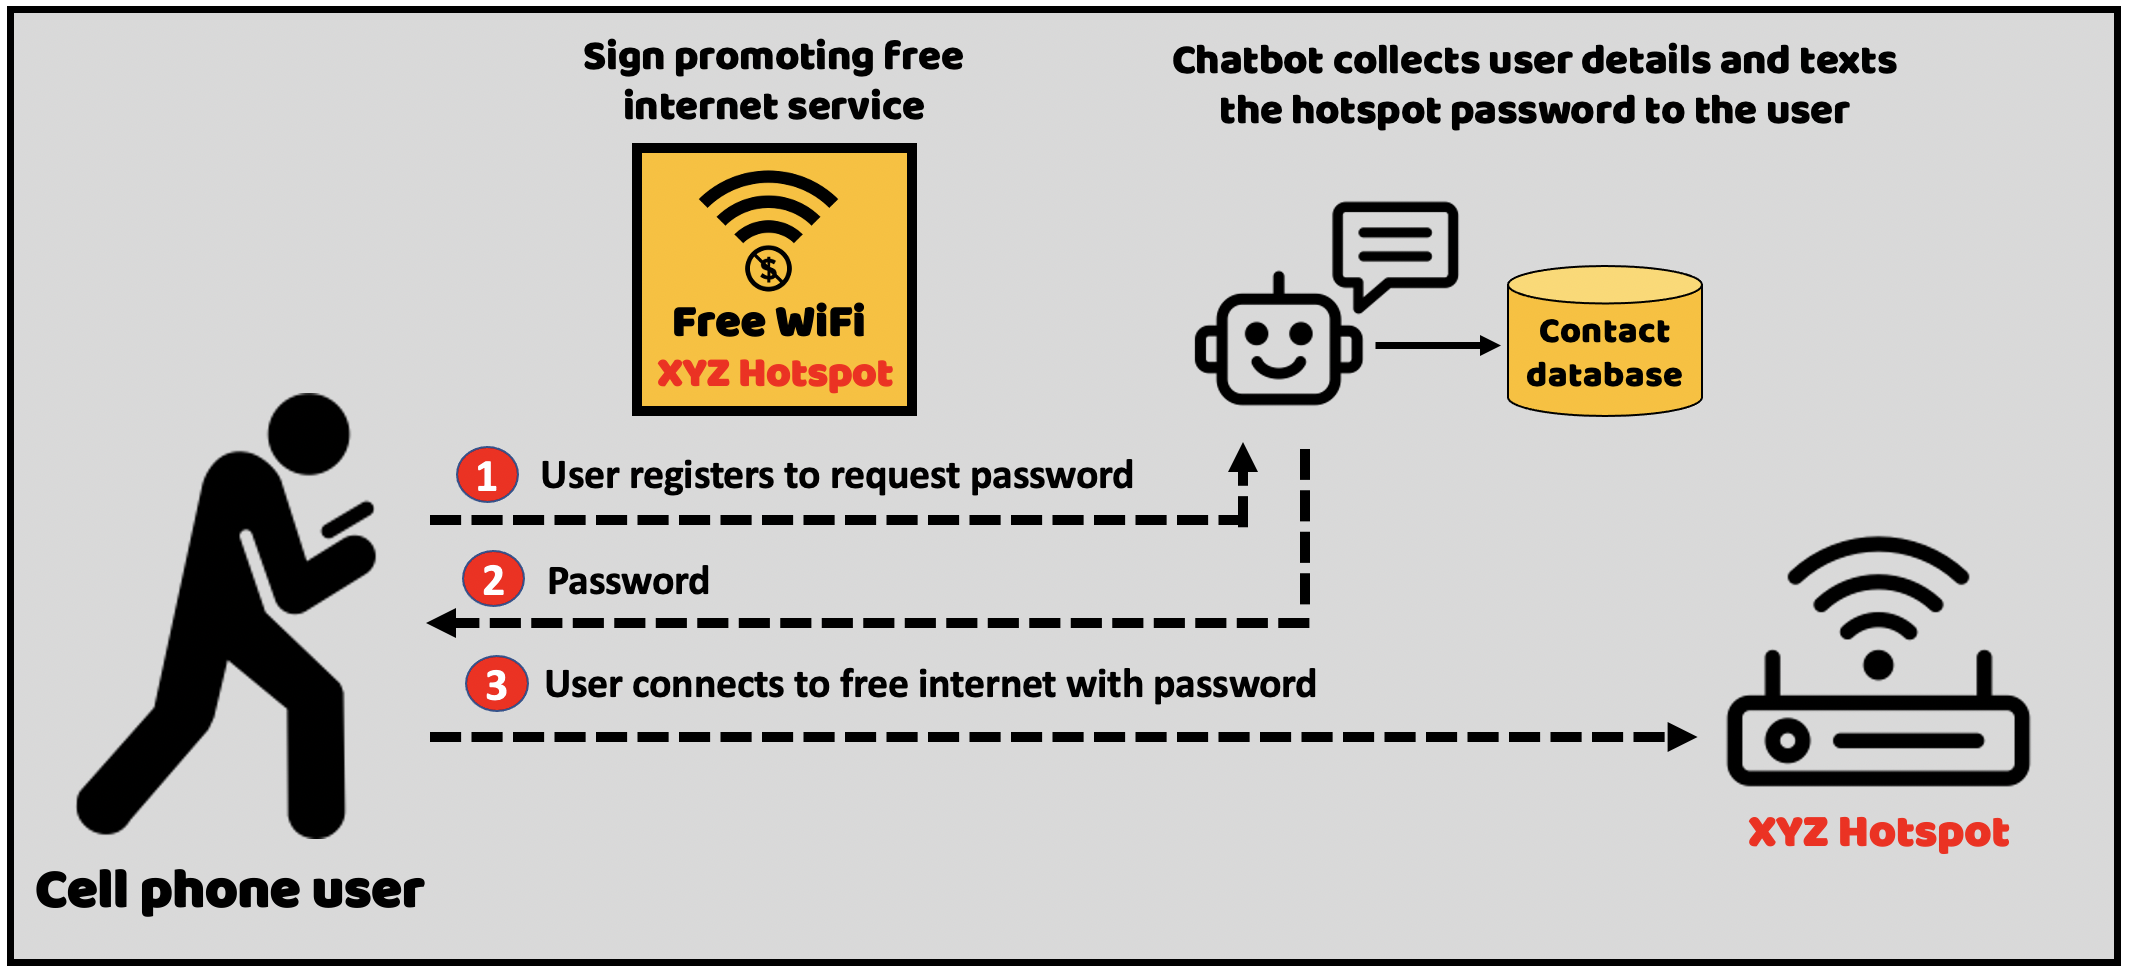 Use WiFi hotspots to provide free internet access in order to build double opt-in contact lists.